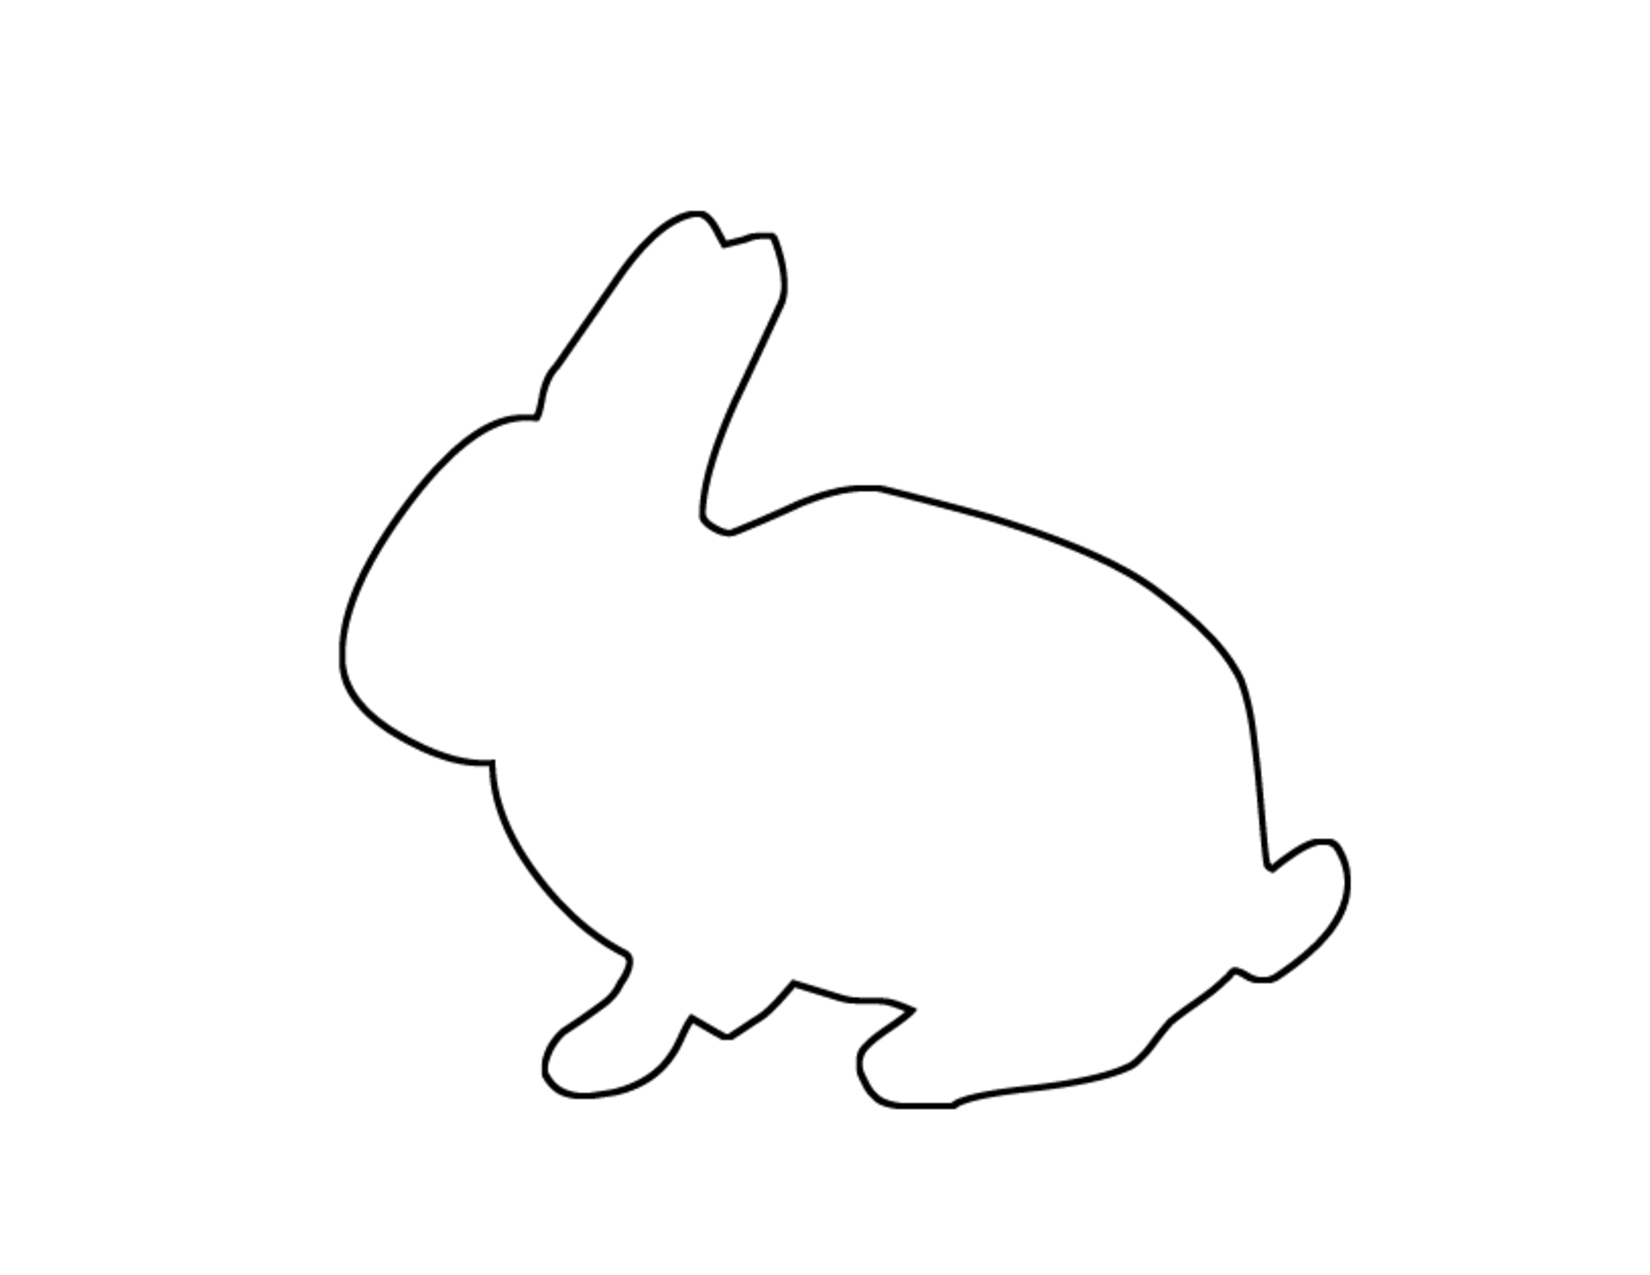 Bunny Outline Photos Of Bunny Cut Out Outline Printable Png